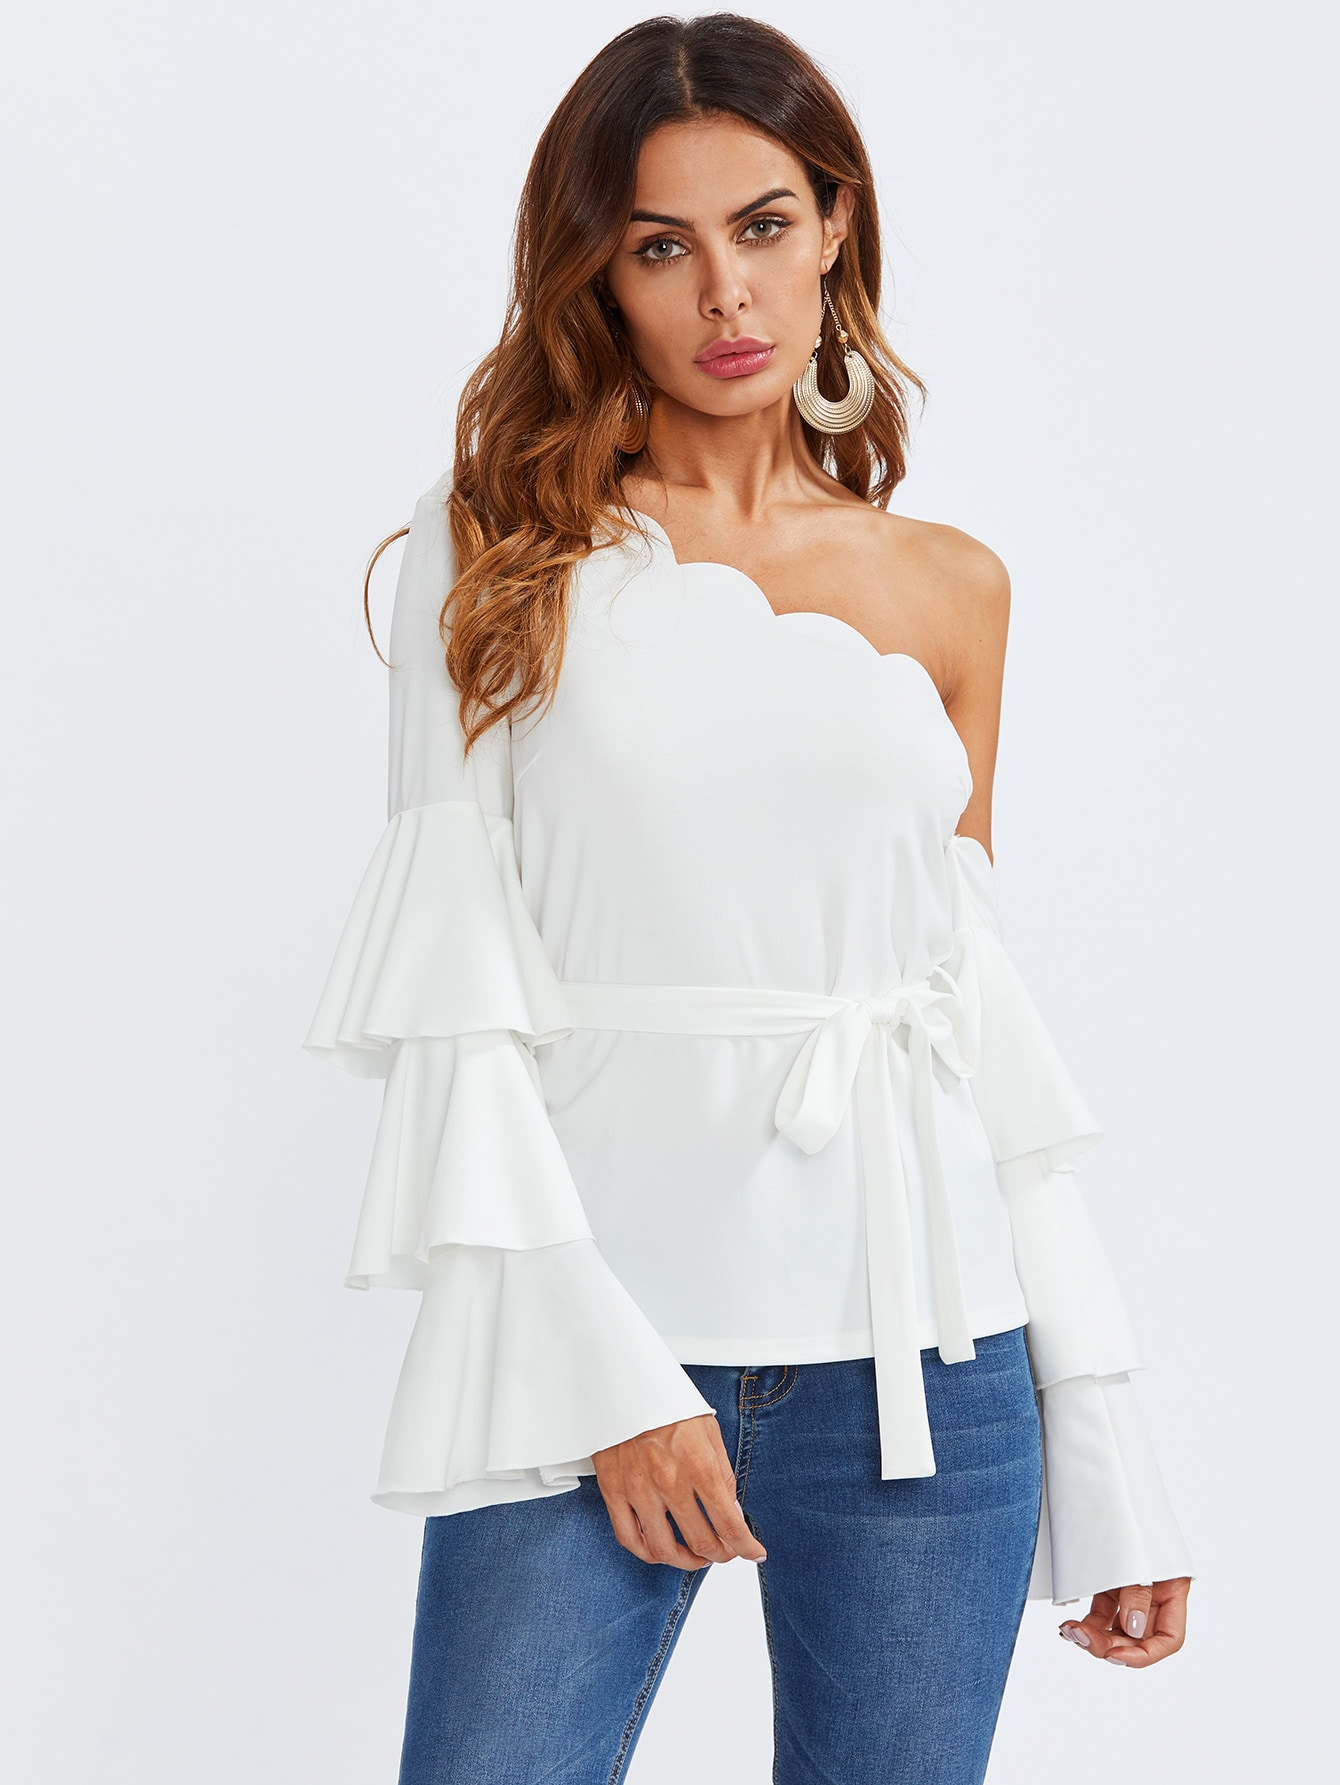 Tiered Trumpet Sleeve Scalloped One Shoulder Blouse elegant trumpet sleeve open back blouse